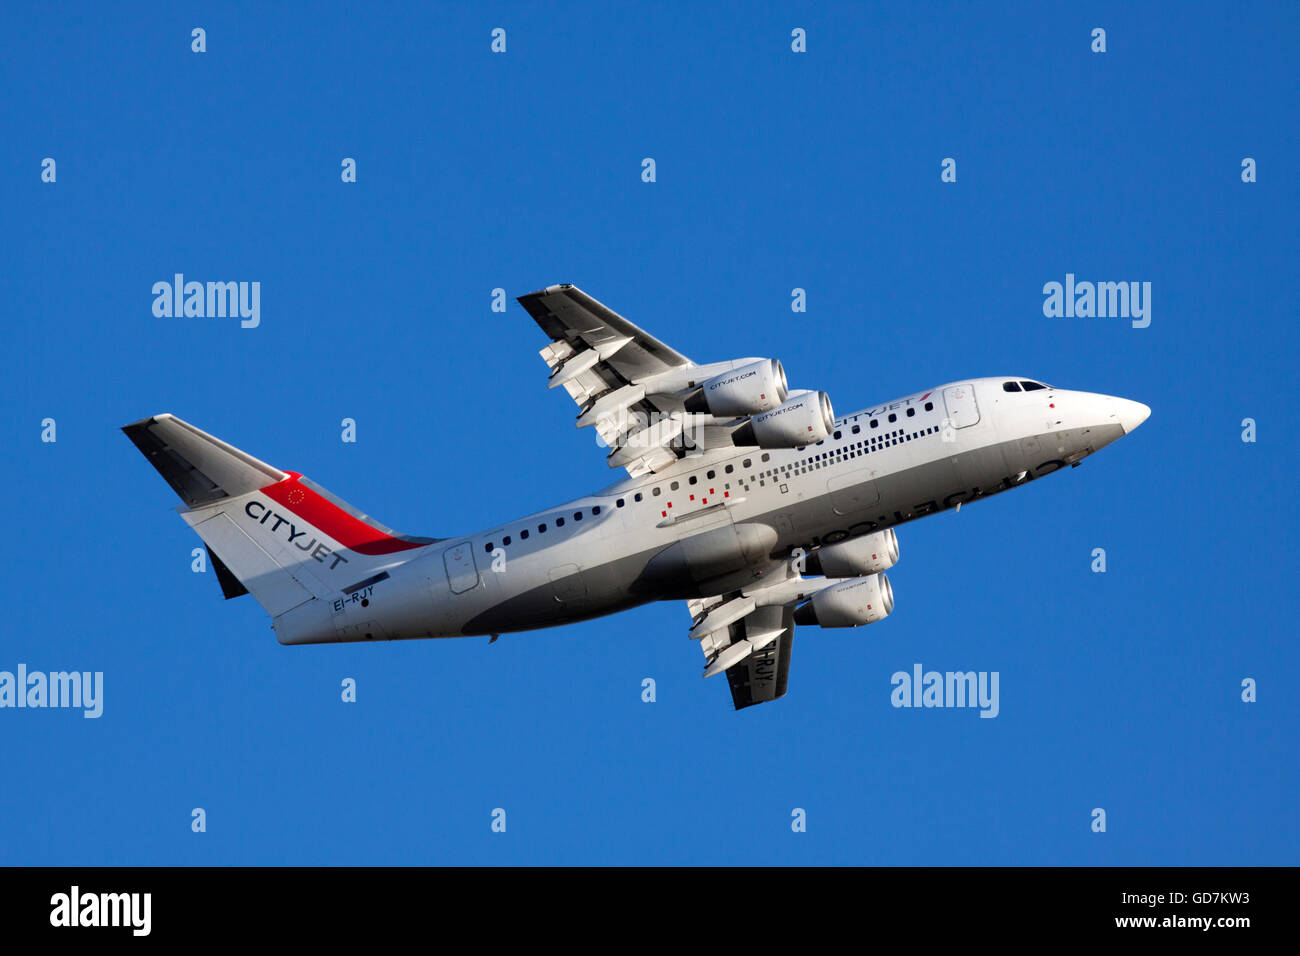 AMSTERDAM, THE NETHERLANDS - FEBRUARY 18, 2015 Close up photo of a four-engined BAe 146 aircraft CityJet with a Stock Photo